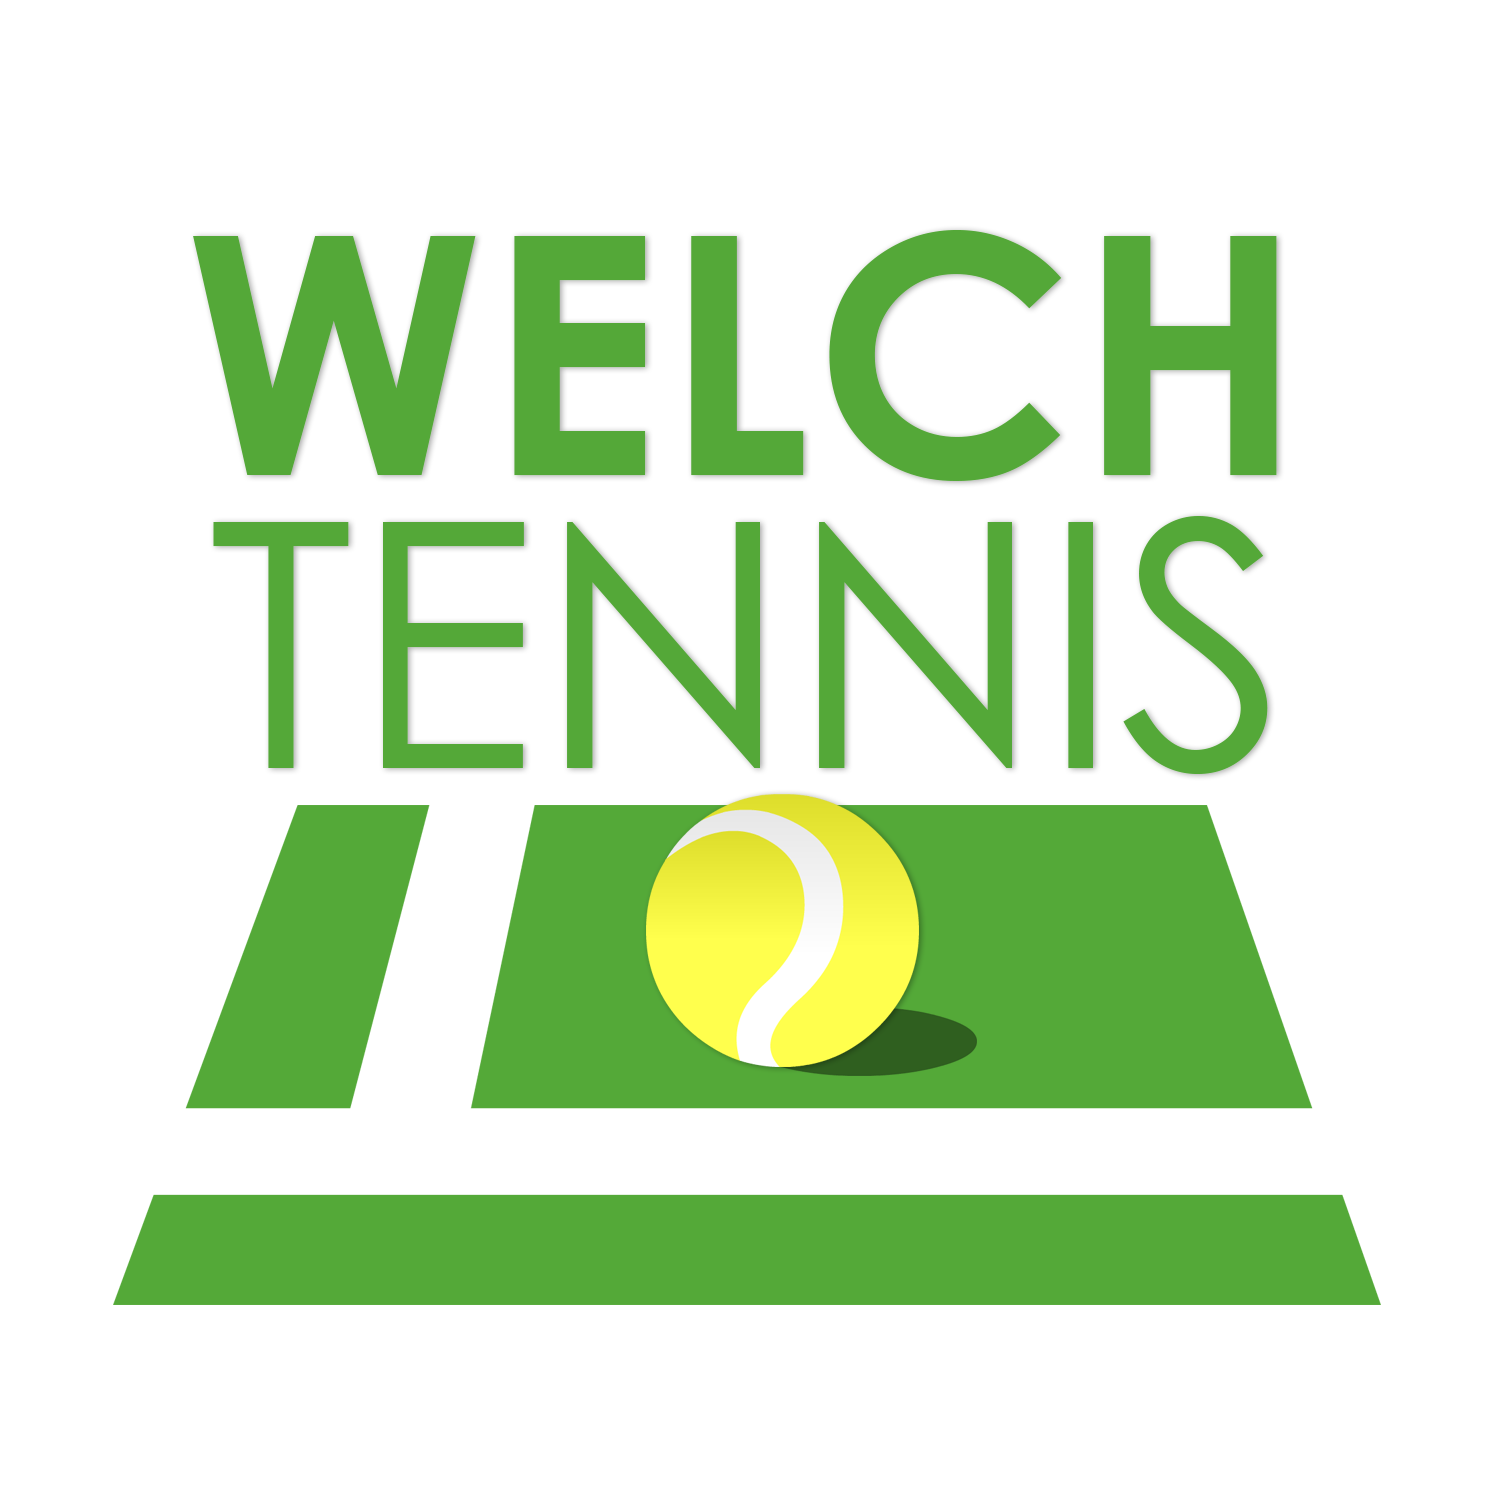 Welch Tennis